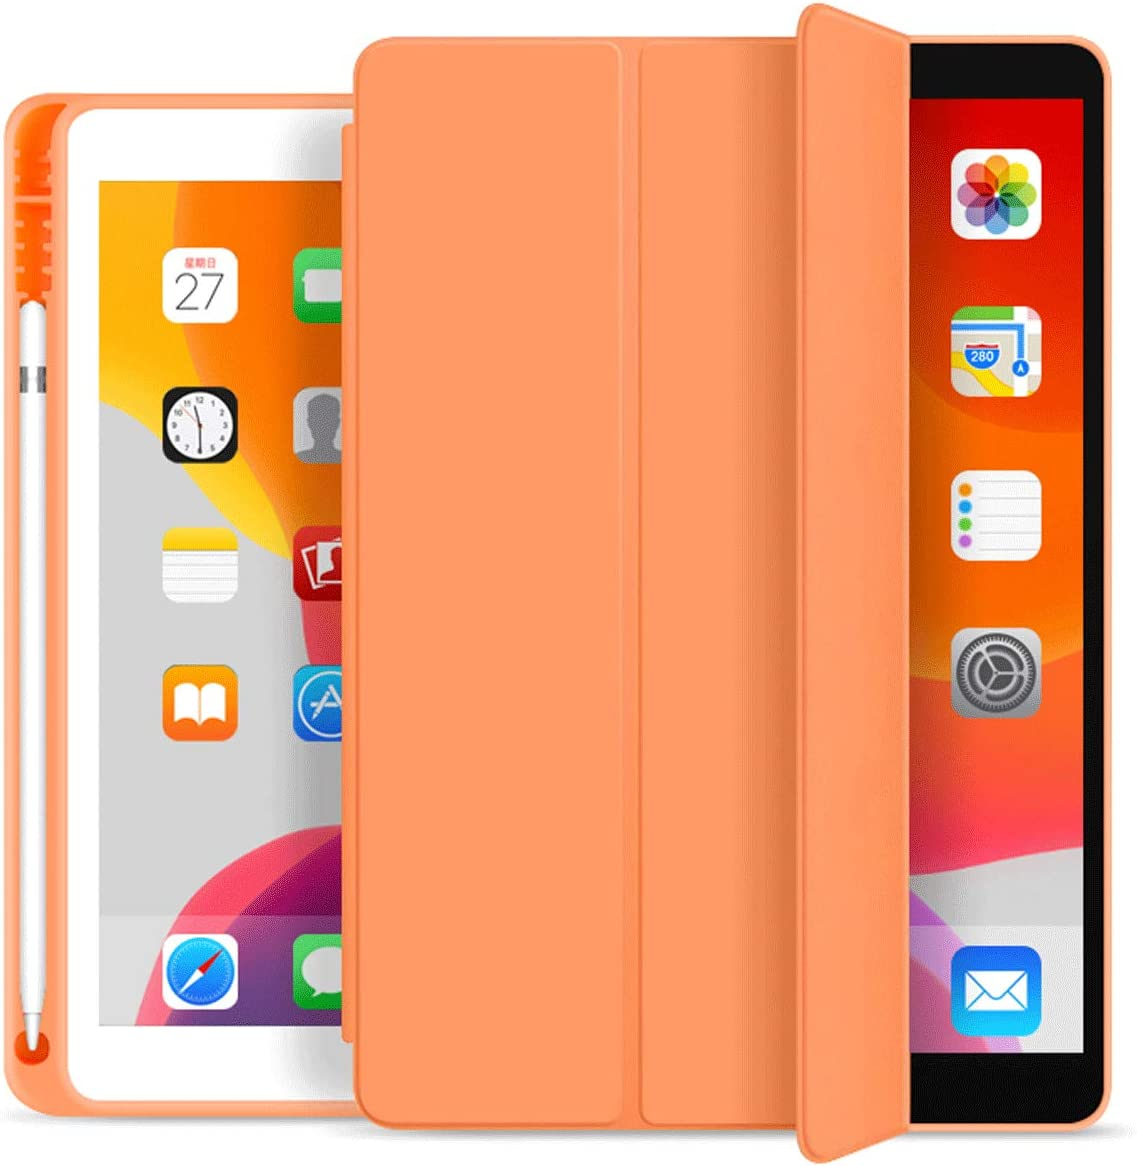 KenKe iPad 7th/8th Gen Case with Pencil Holder,iPad 10.2 inch Lightweight Smart Cover Soft TPU Back,Auto Sleep/Wake for 10.2 New iPad 8th Generation Case 2020 iPad 7th Generation Case 2019 -Orange